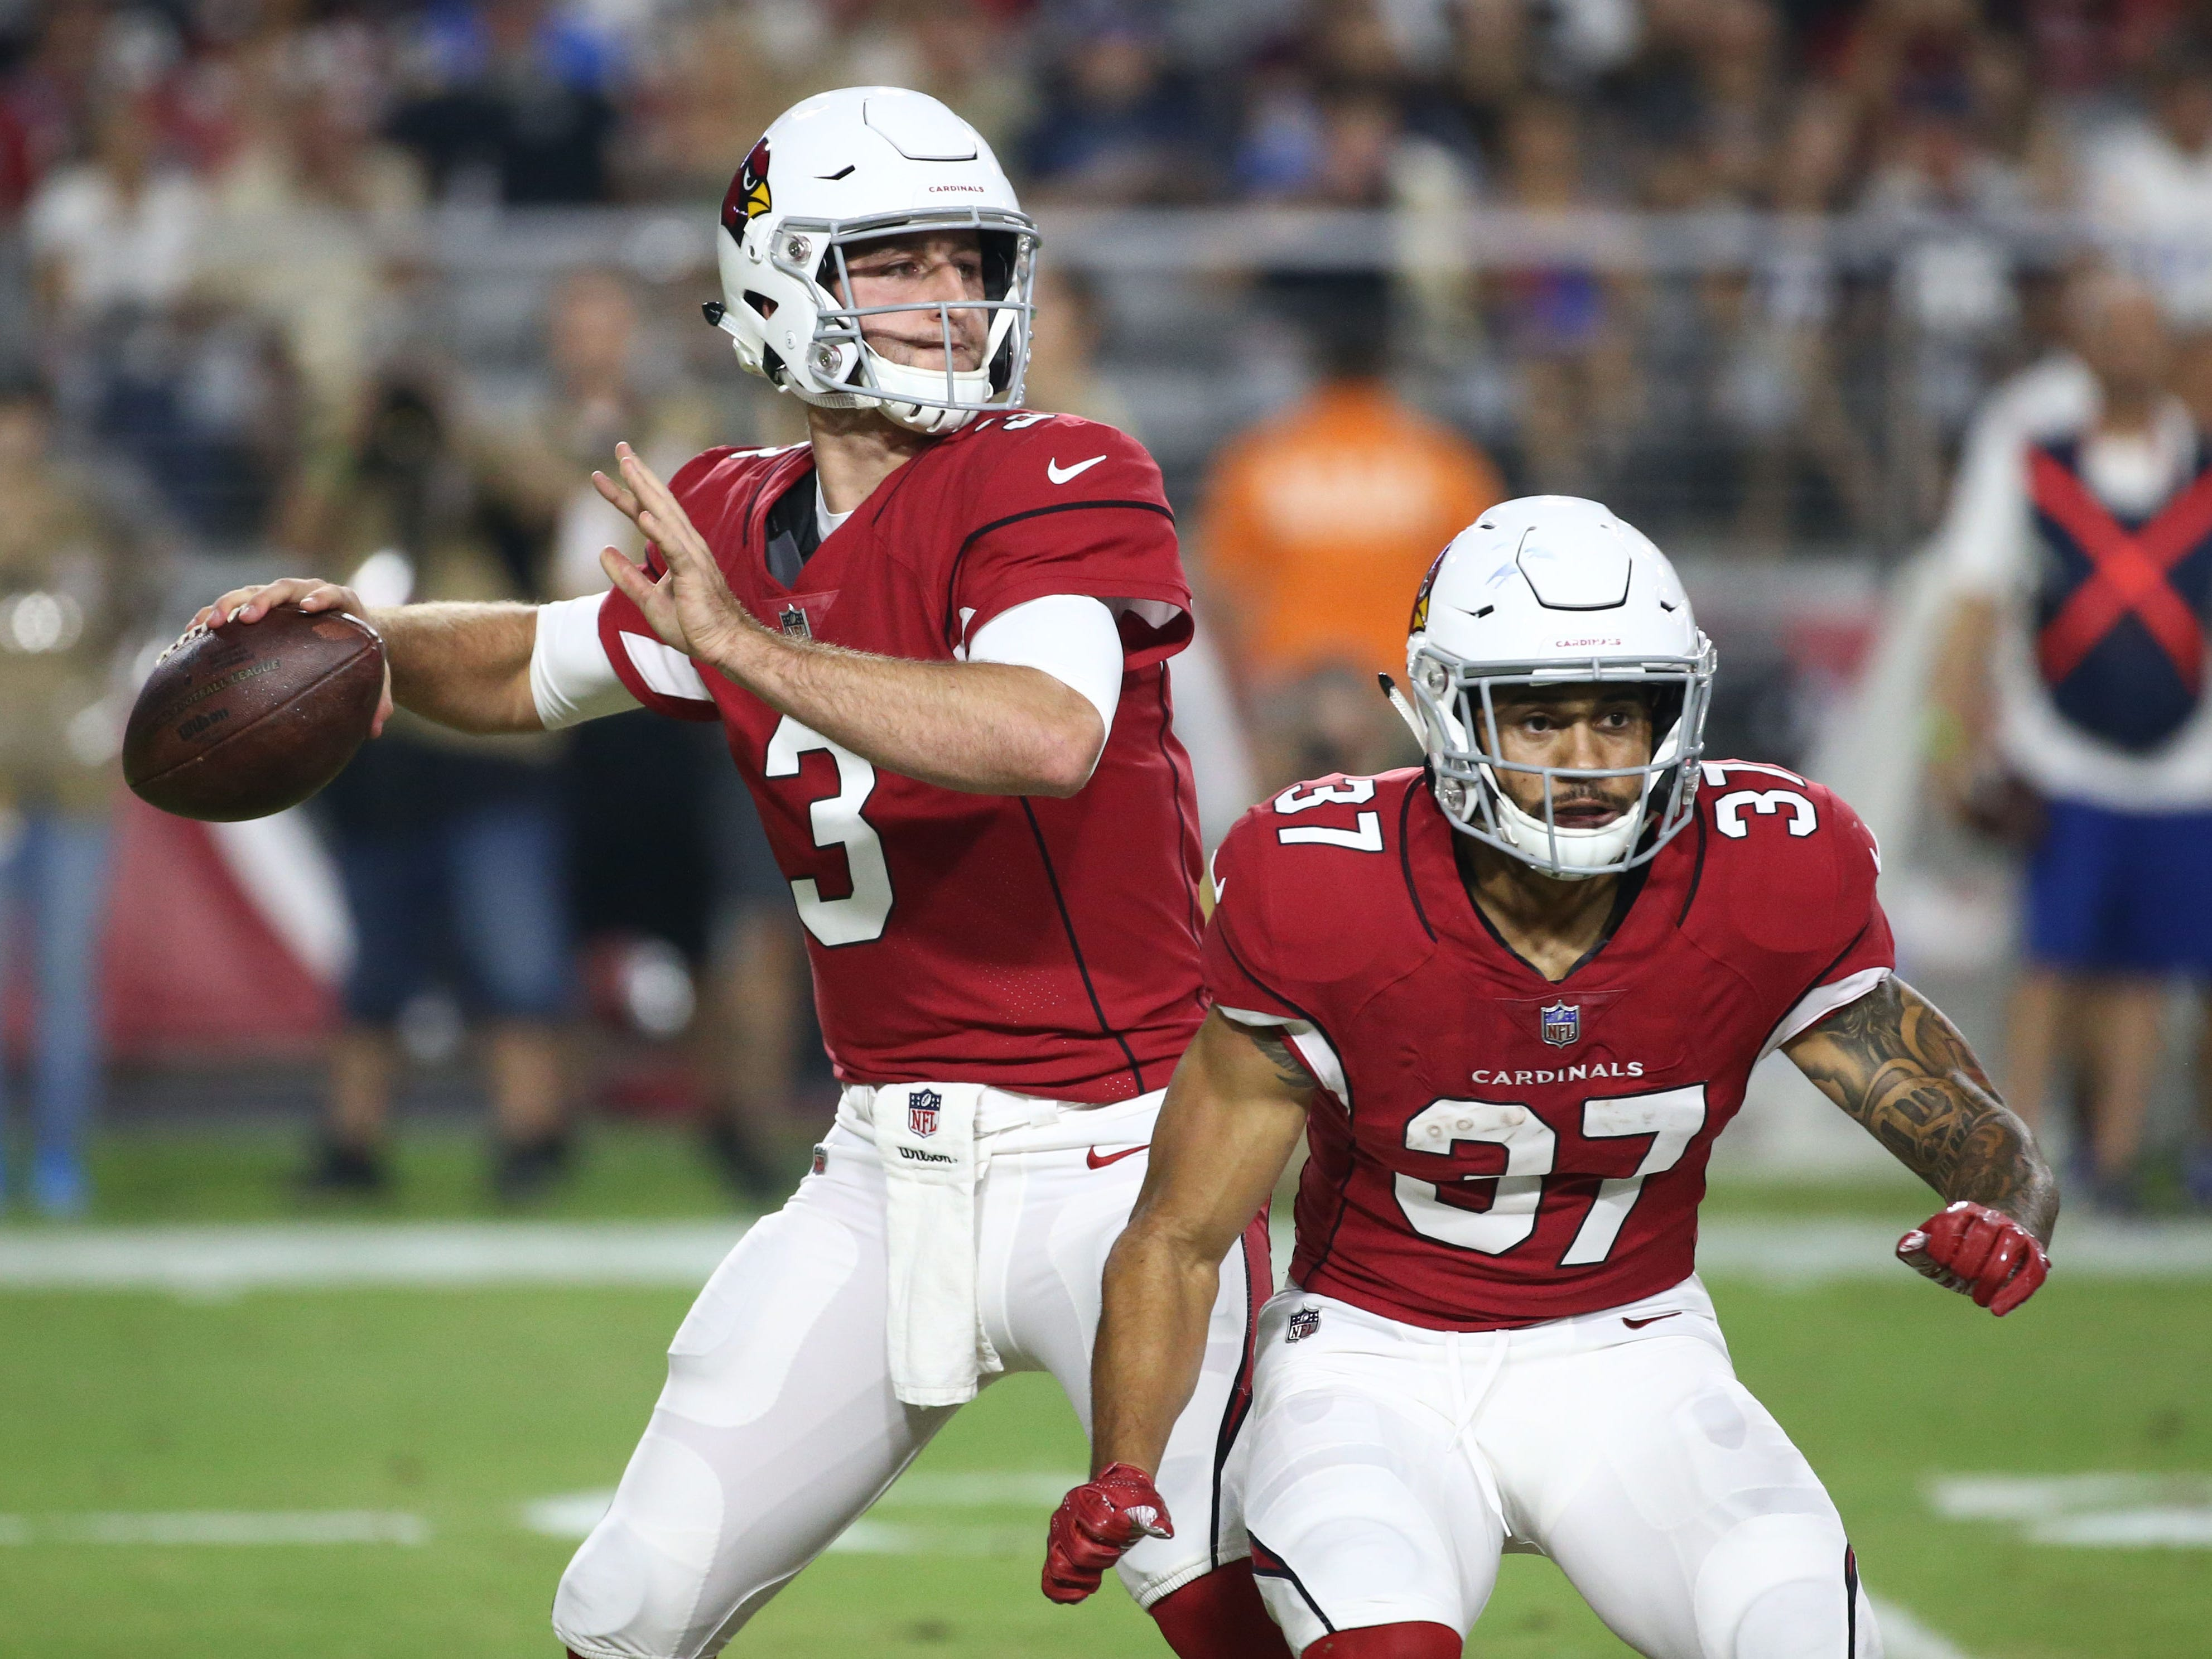 Arizona Cardinals quarterback Josh Rosen completes his first pass against the L.A. Chargers in the first half during a preseason NFL football game on Aug. 11, 2018 at University of Phoenix Stadium in Glendale, Ariz.